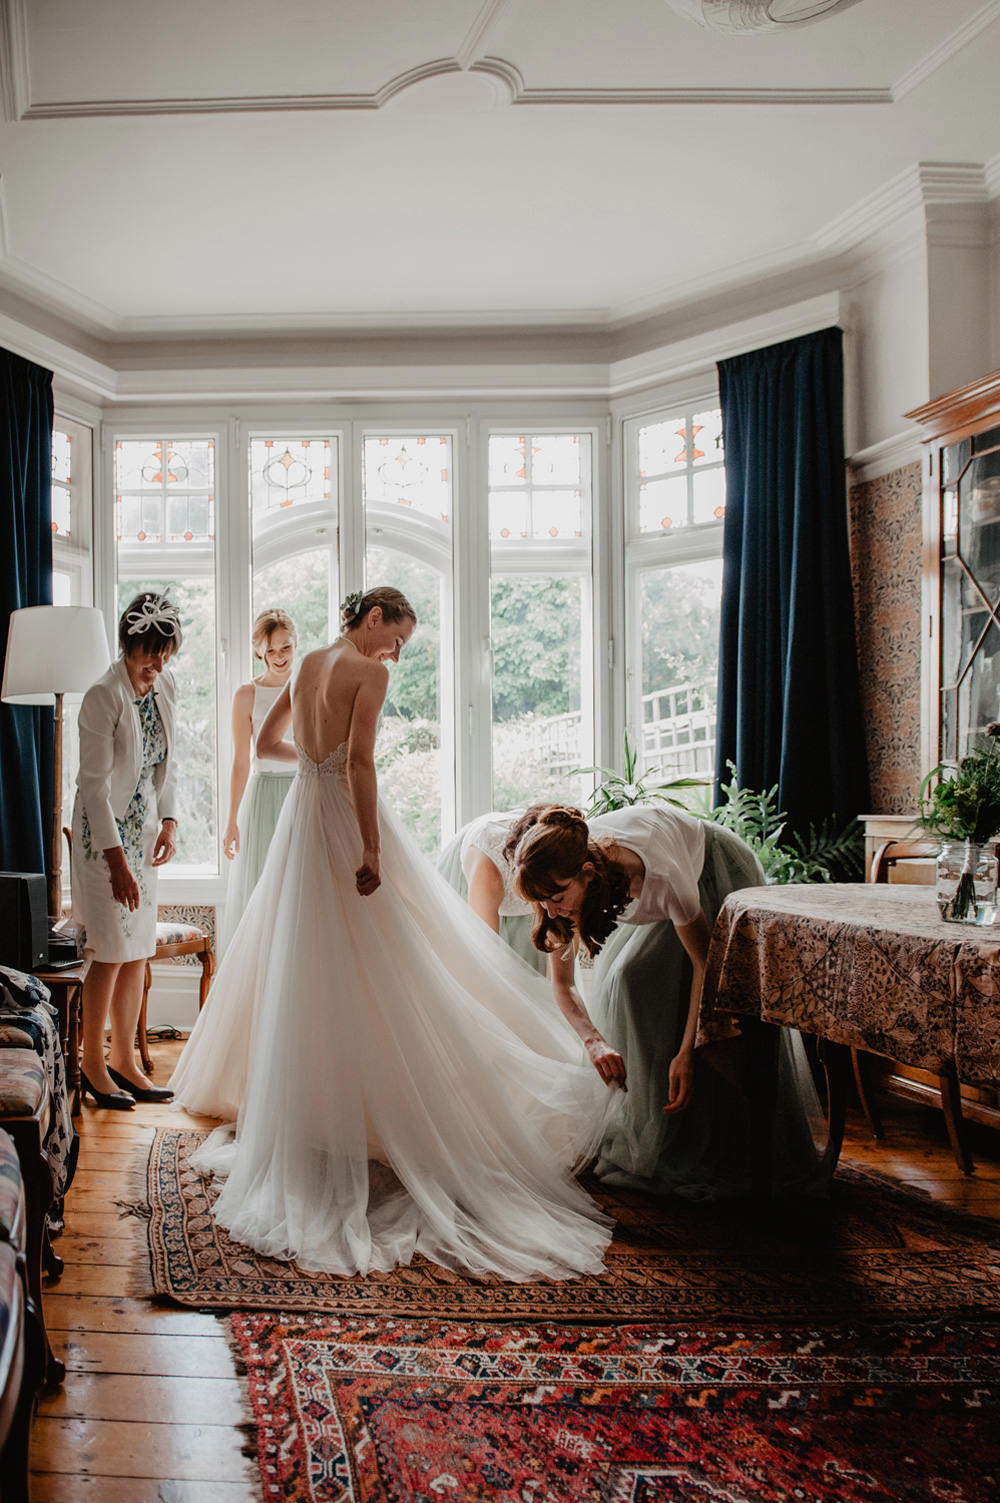 Dress Gown Bride Bridal Halterneck Tulle Skirt Green Ribbon Stour Space Wedding Anne Schwarz Photography